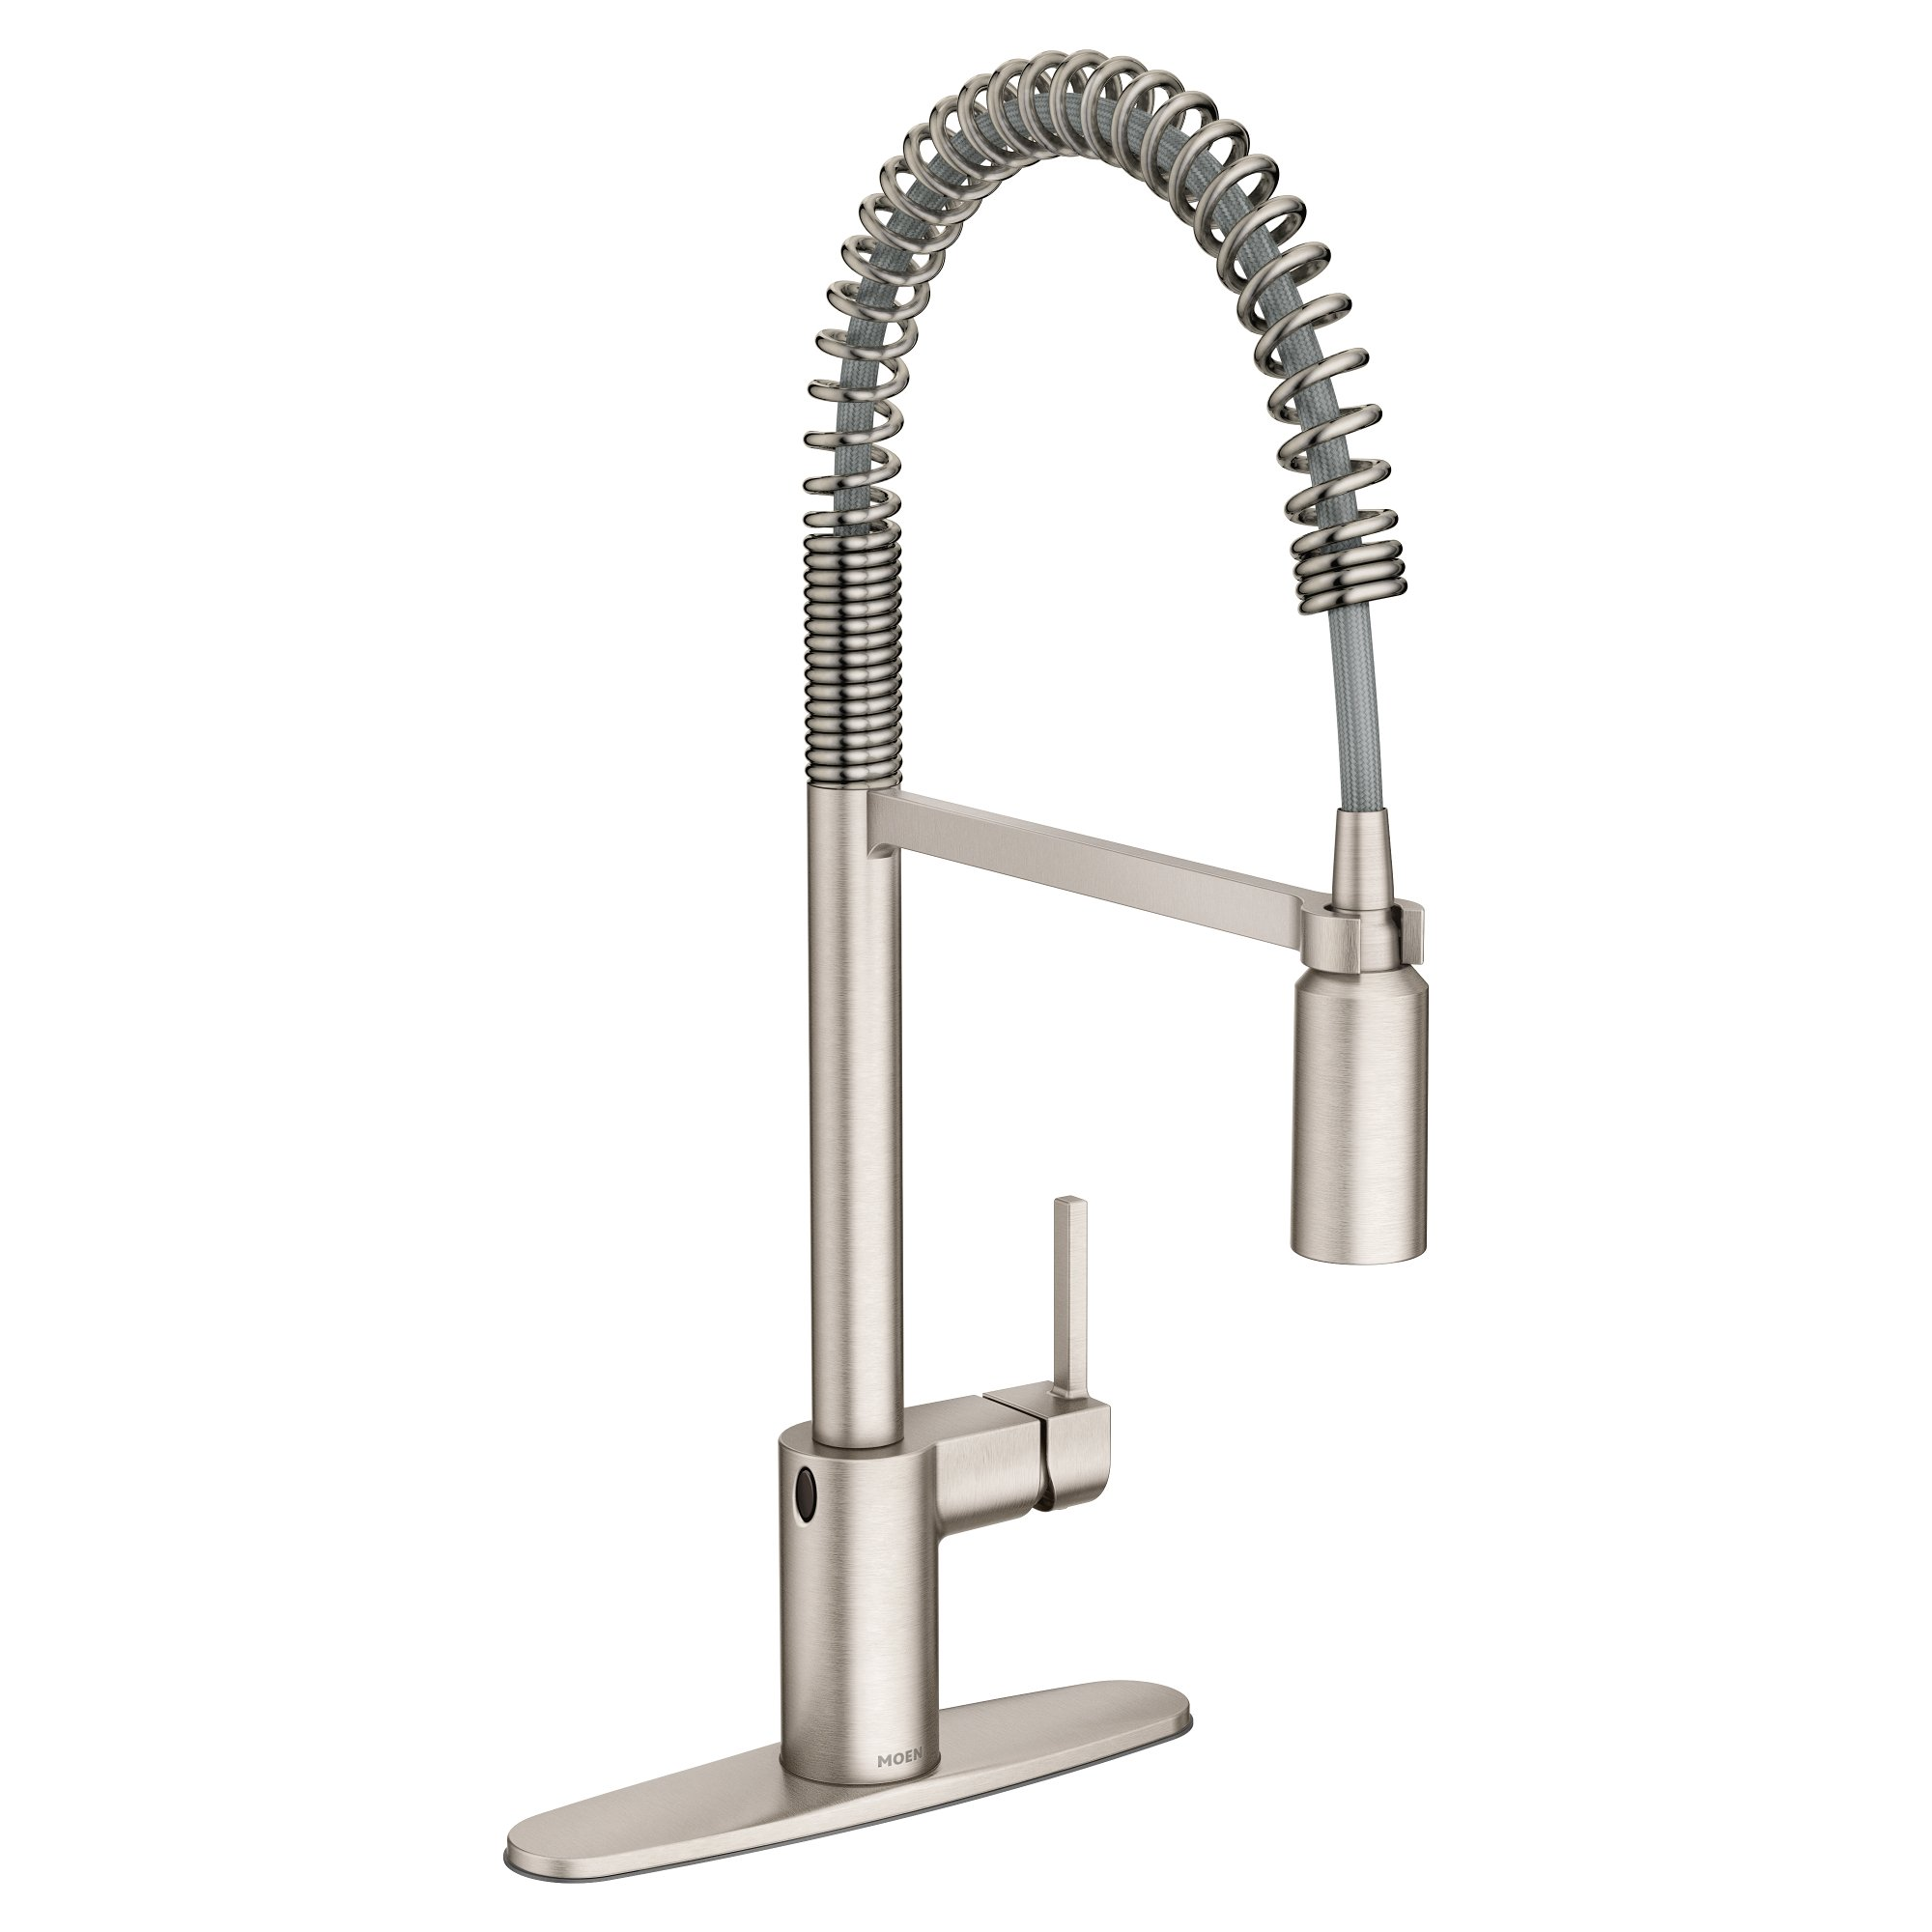 Moen 5923EWSRS Align Motionsense Wave Sensor Touchless One-Handle High Arc Spring Pre-Rinse Pulldown Kitchen Faucet, Spot Resist Stainless by Moen (Image #8)